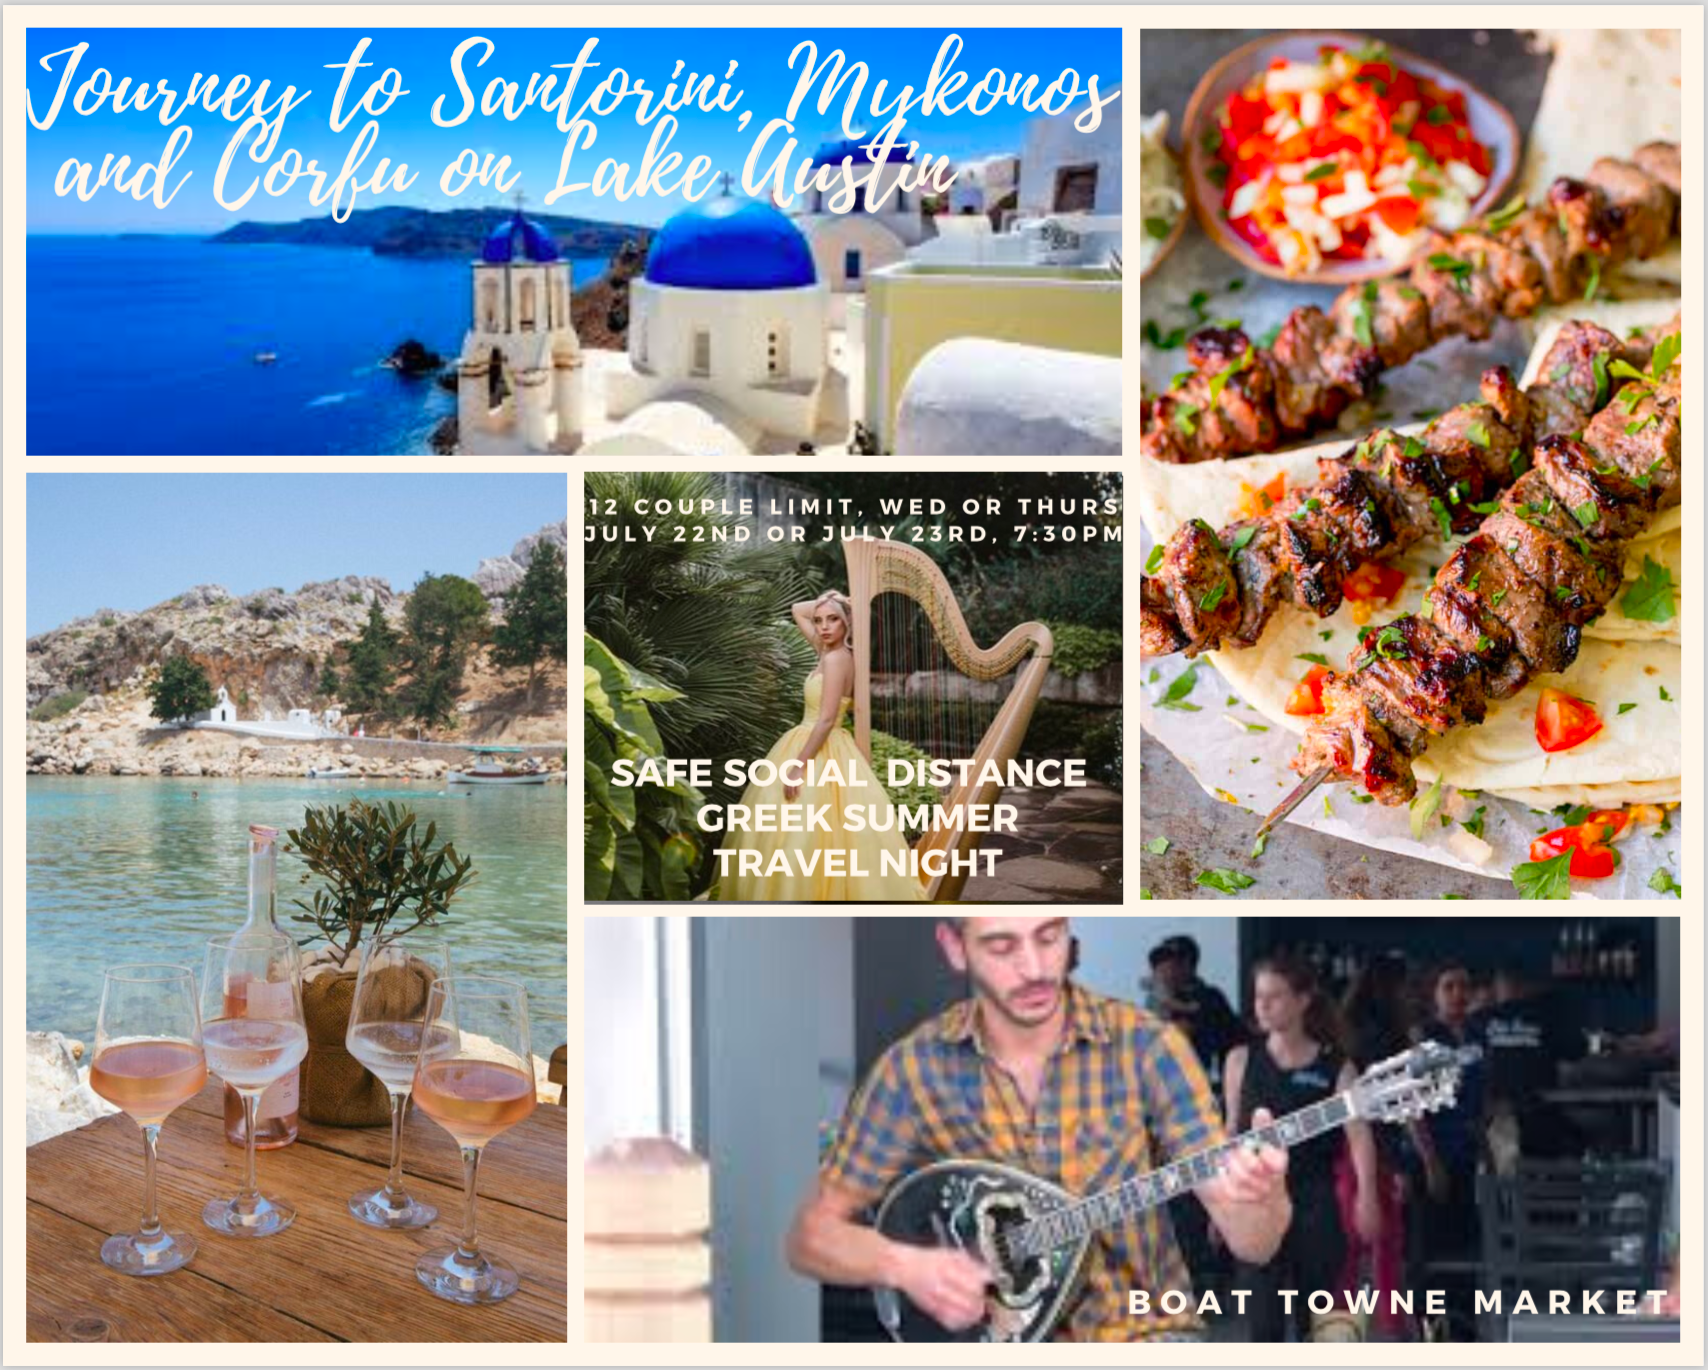 Summer Wine Series: Journey to Santorini, Mykonos & Corfu on Lake Austin